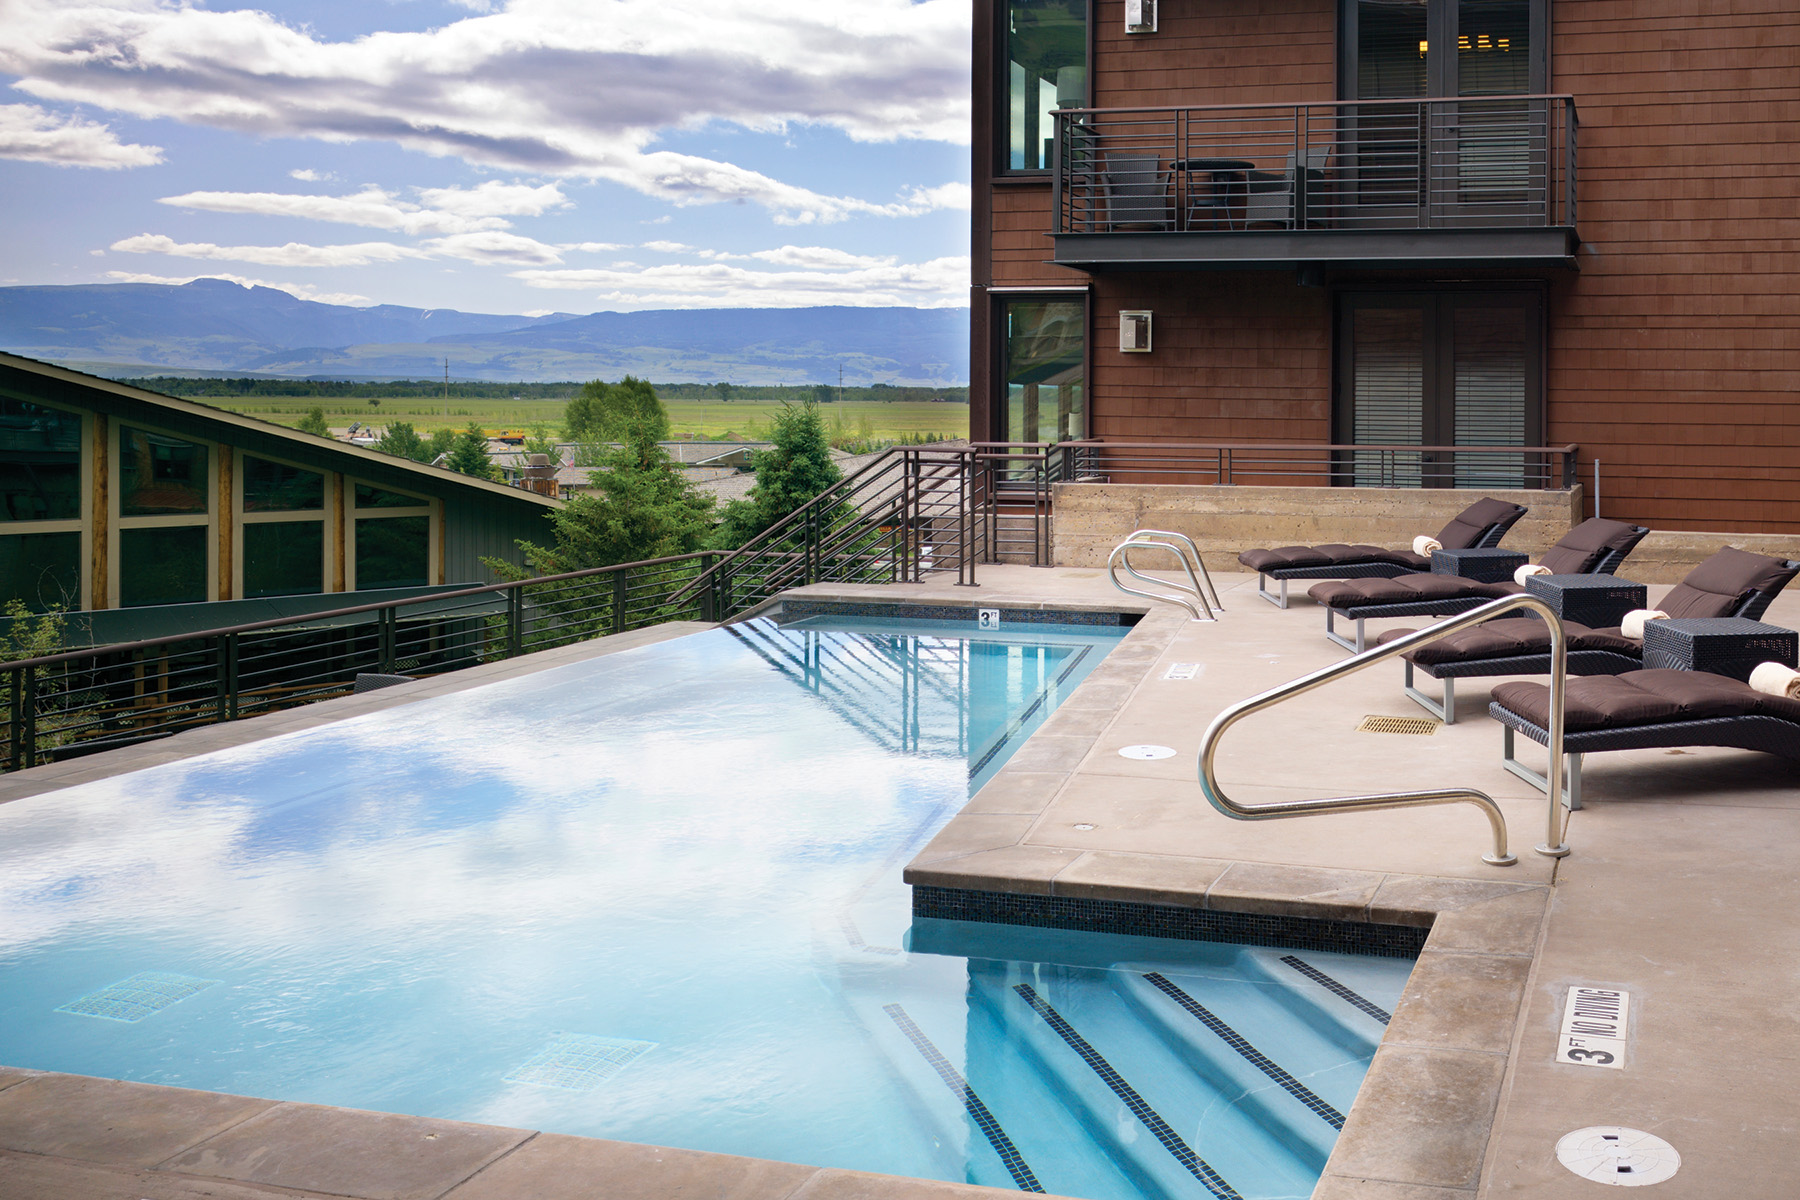 Condominio por un Venta en Slopeside in Hotel Terra 3325 W. Village Drive unit 457, Teton Village, Wyoming, 83025 Jackson Hole, Estados Unidos